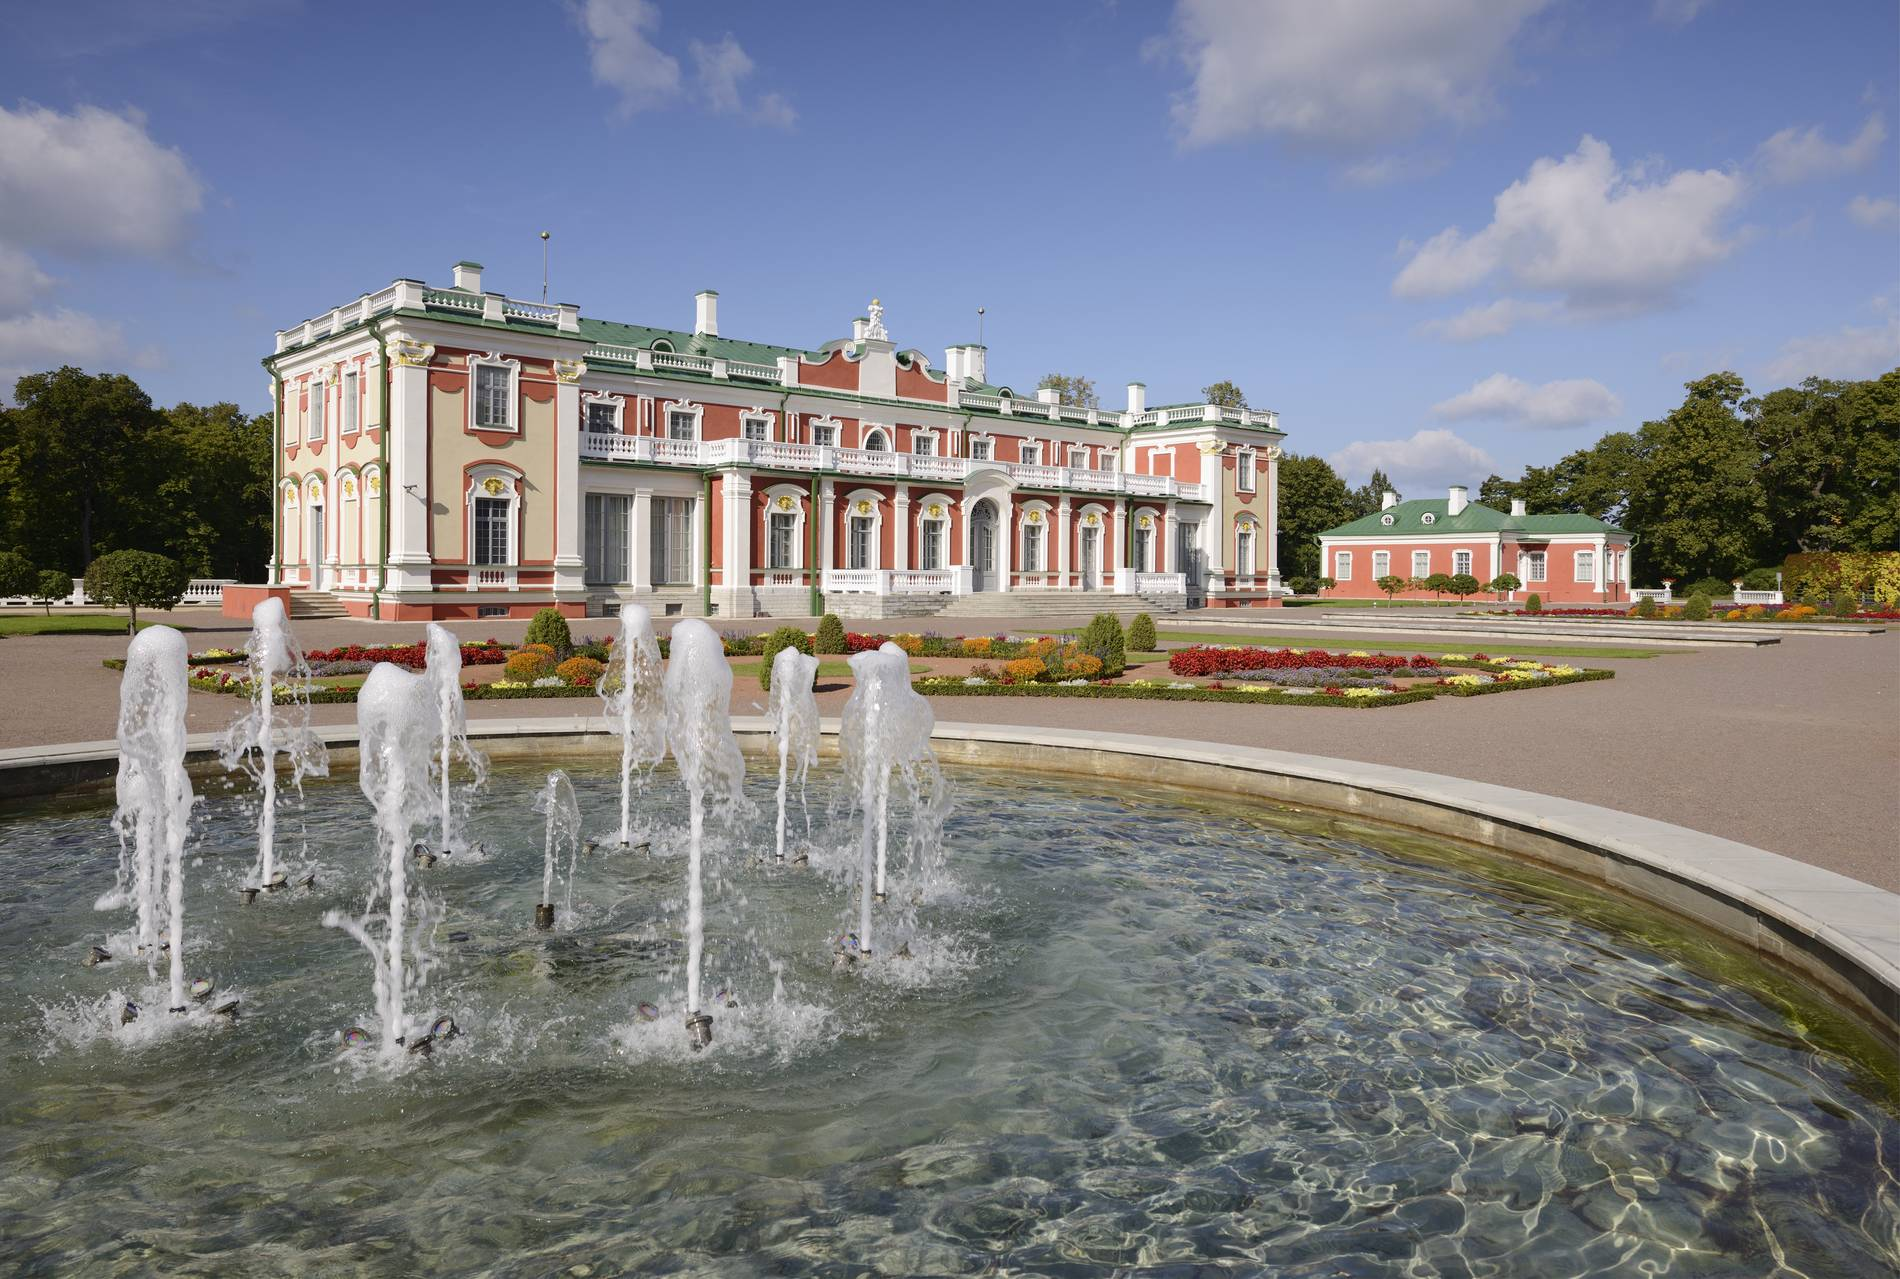 External view of the Kadriorg Palace - Kadriorg Art Museum in Tallinn, Estonia